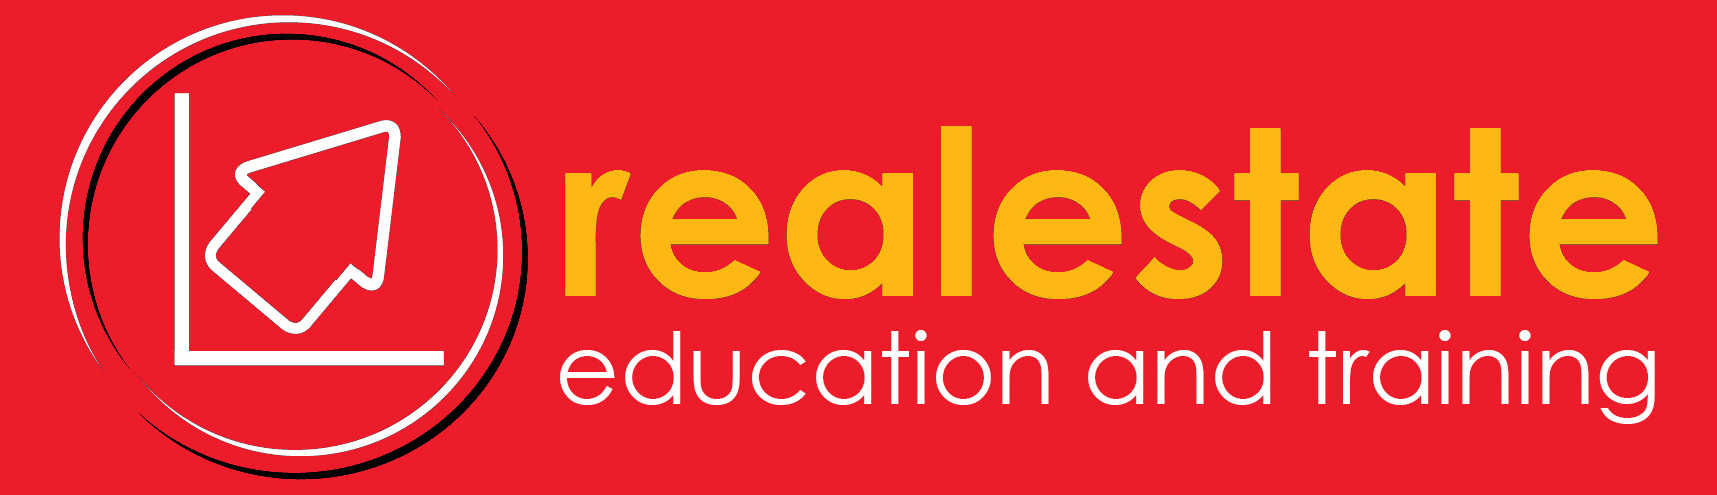 REET (Real Estate Education & Training)